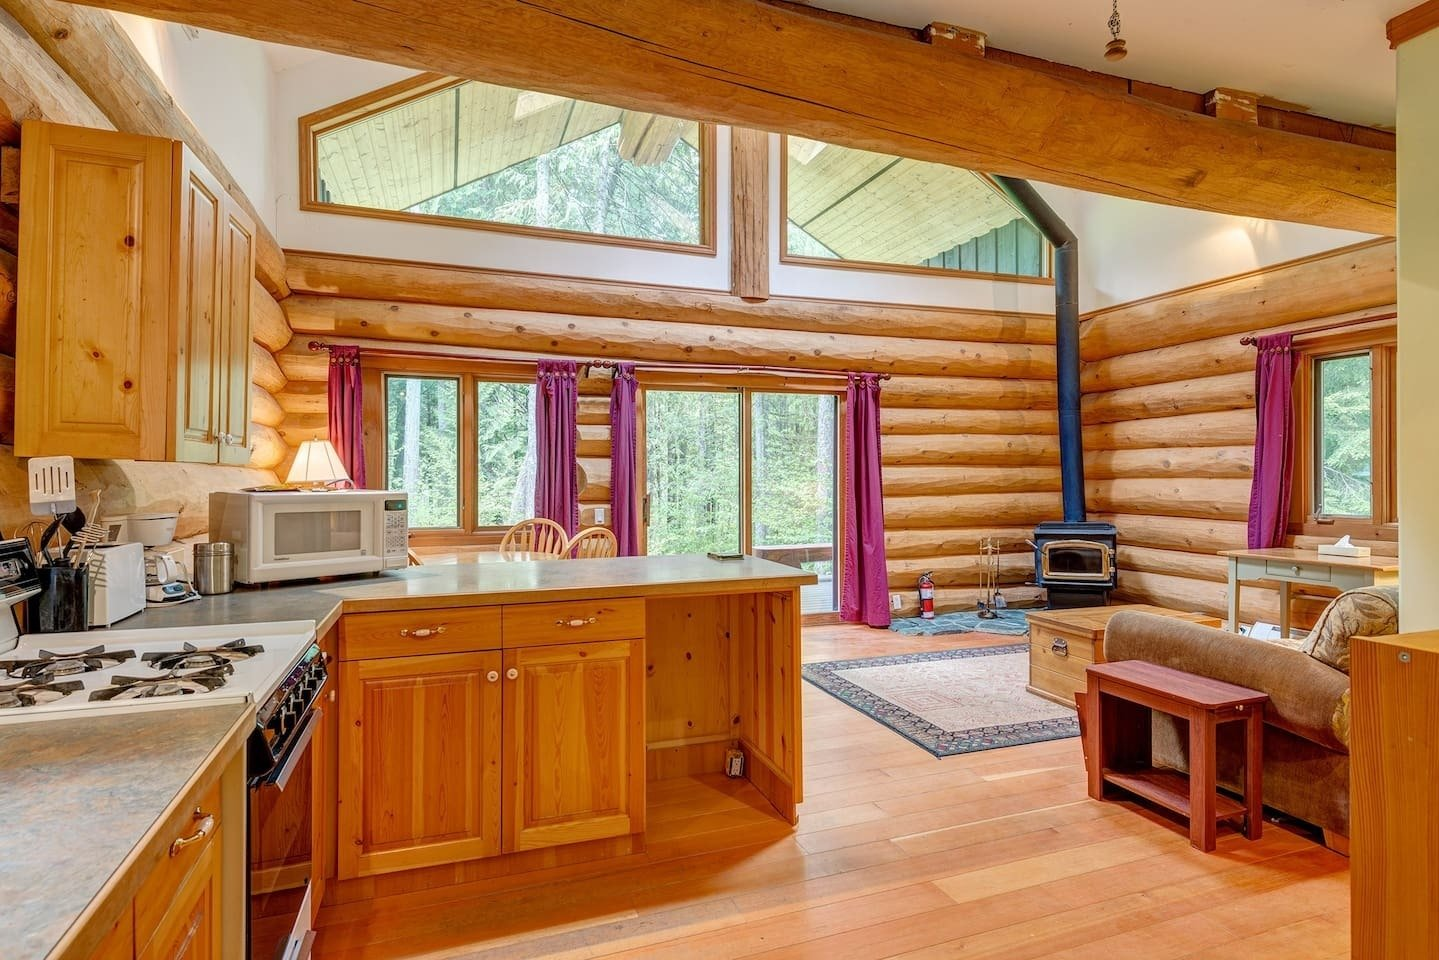 Best Cabins in Whistler